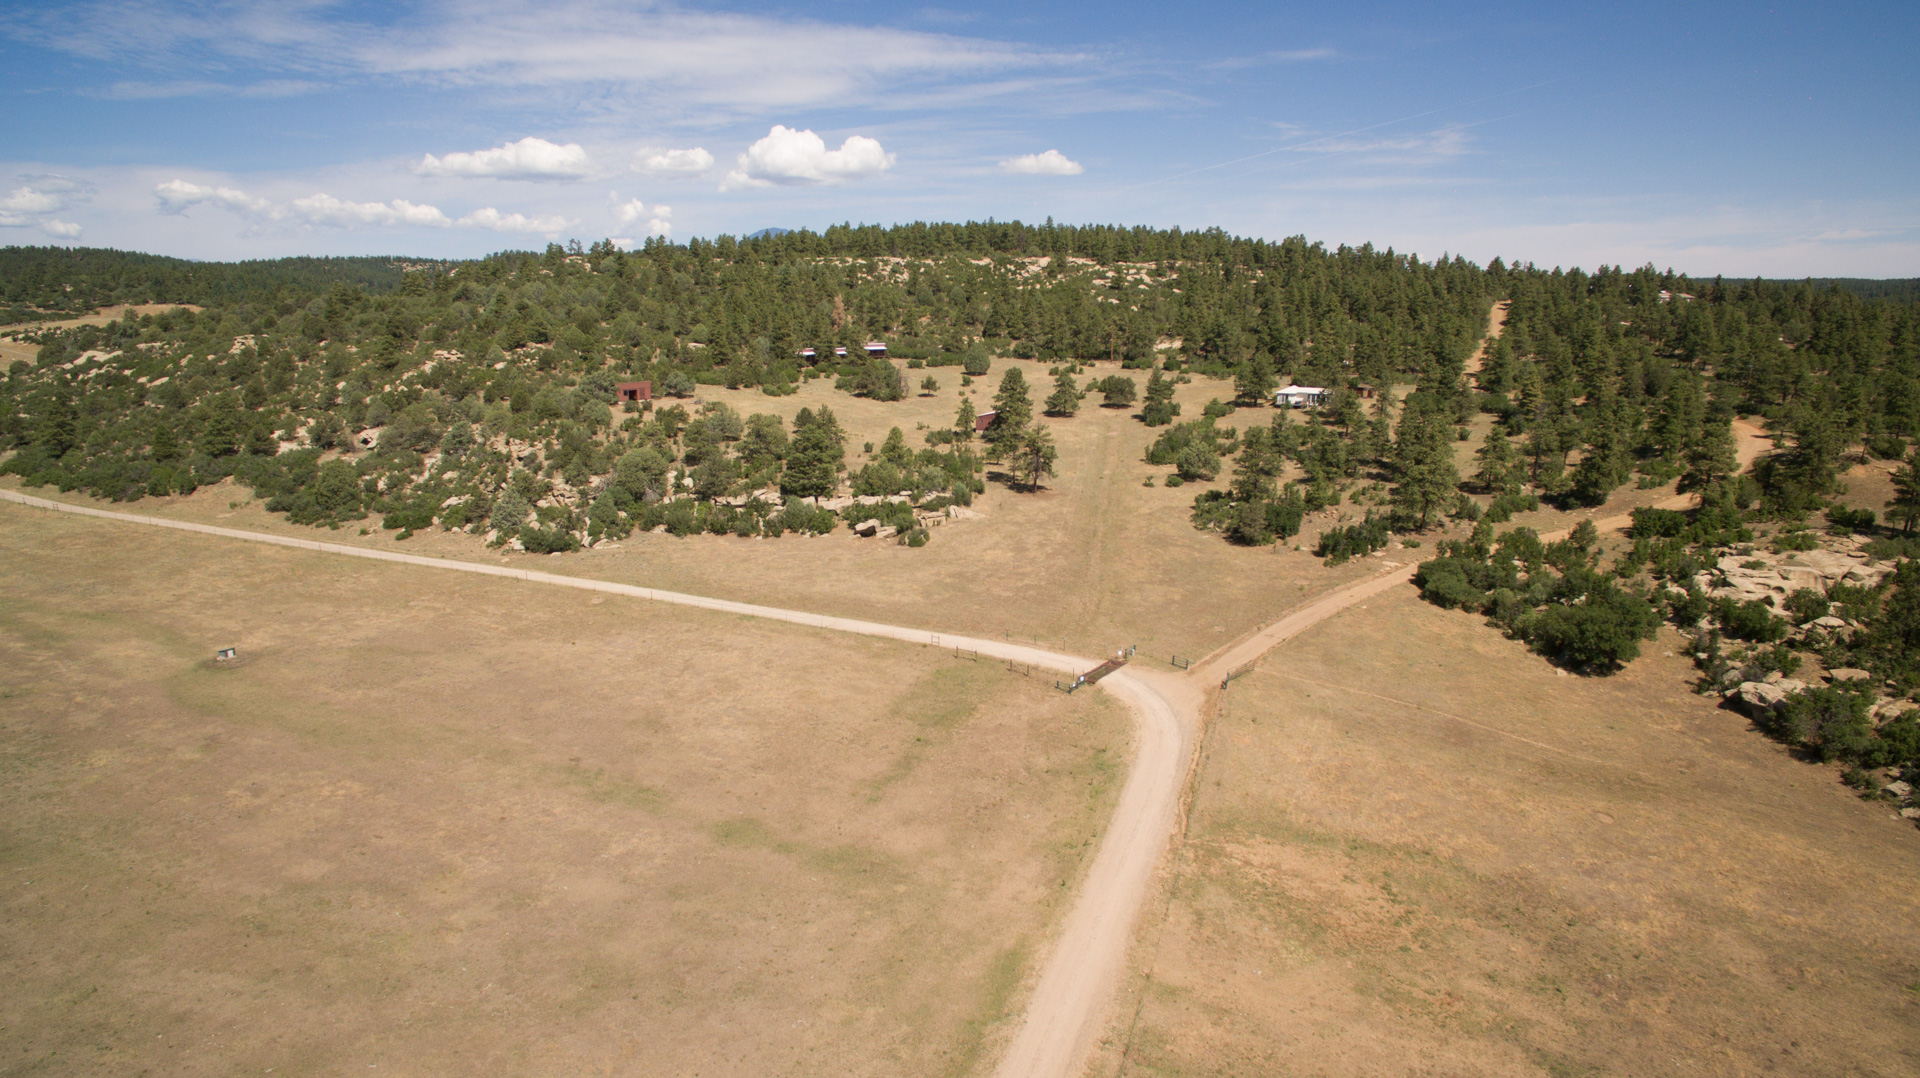 Base of the ridge where the property is located. Road to the right leads directly to the property